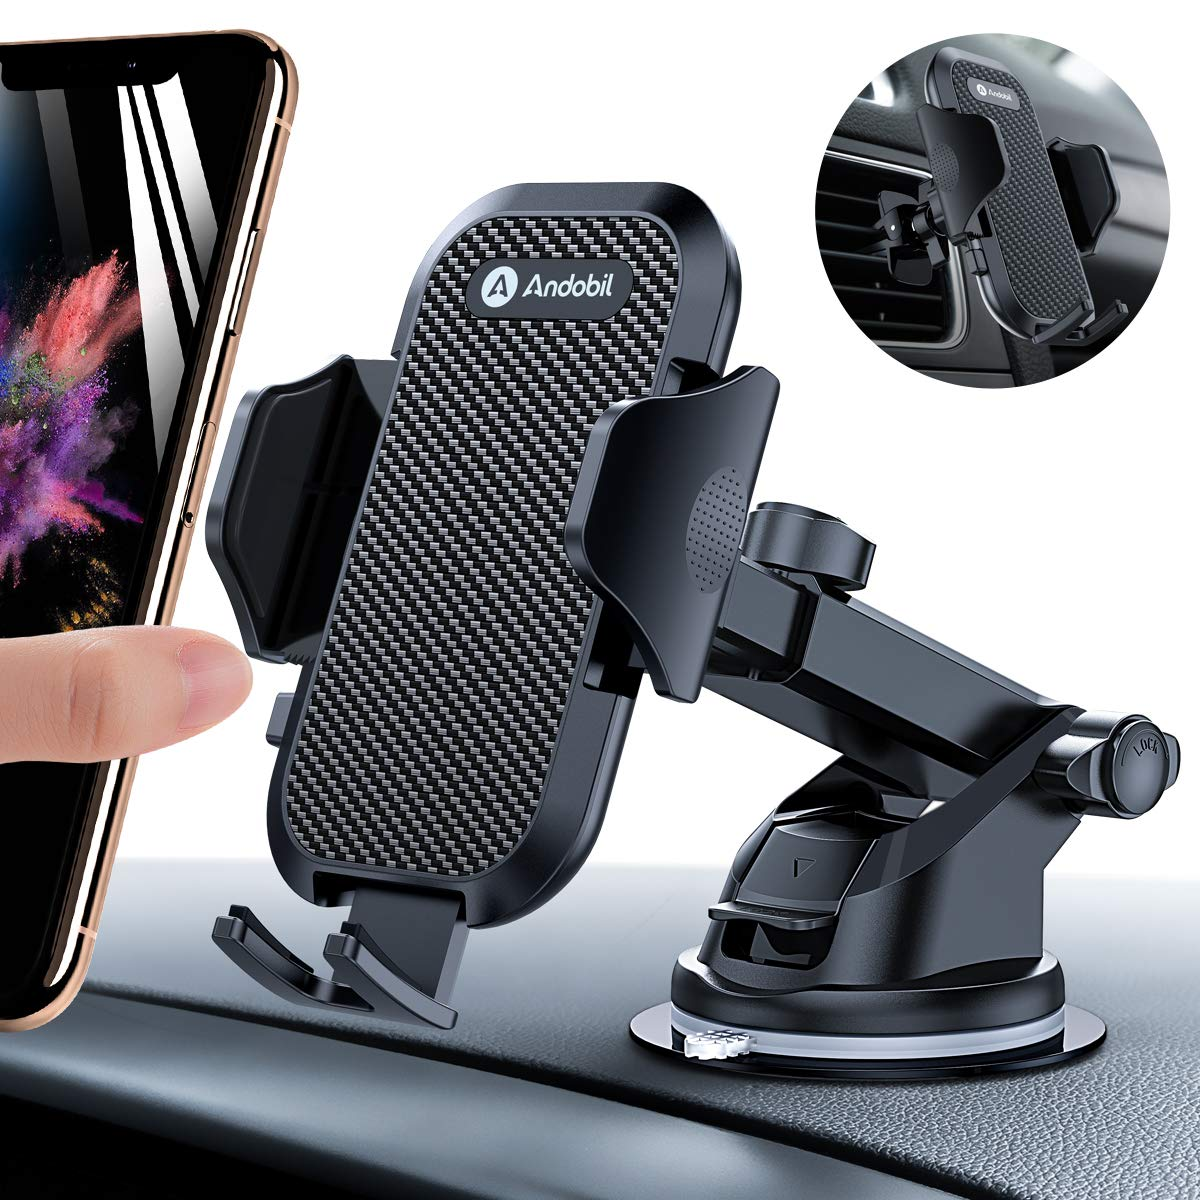 Andobil Car Phone Mount Easy Clamp, Ultimate Hands-Free Phone Holder for Car Dashboard Air Vent Windshield, Super Suction Cup, Compatible for iPhone 11/11 Pro/8 Plus/8/X/XR/XS/7 Plus Samsung S10/S9/S8 by andobil